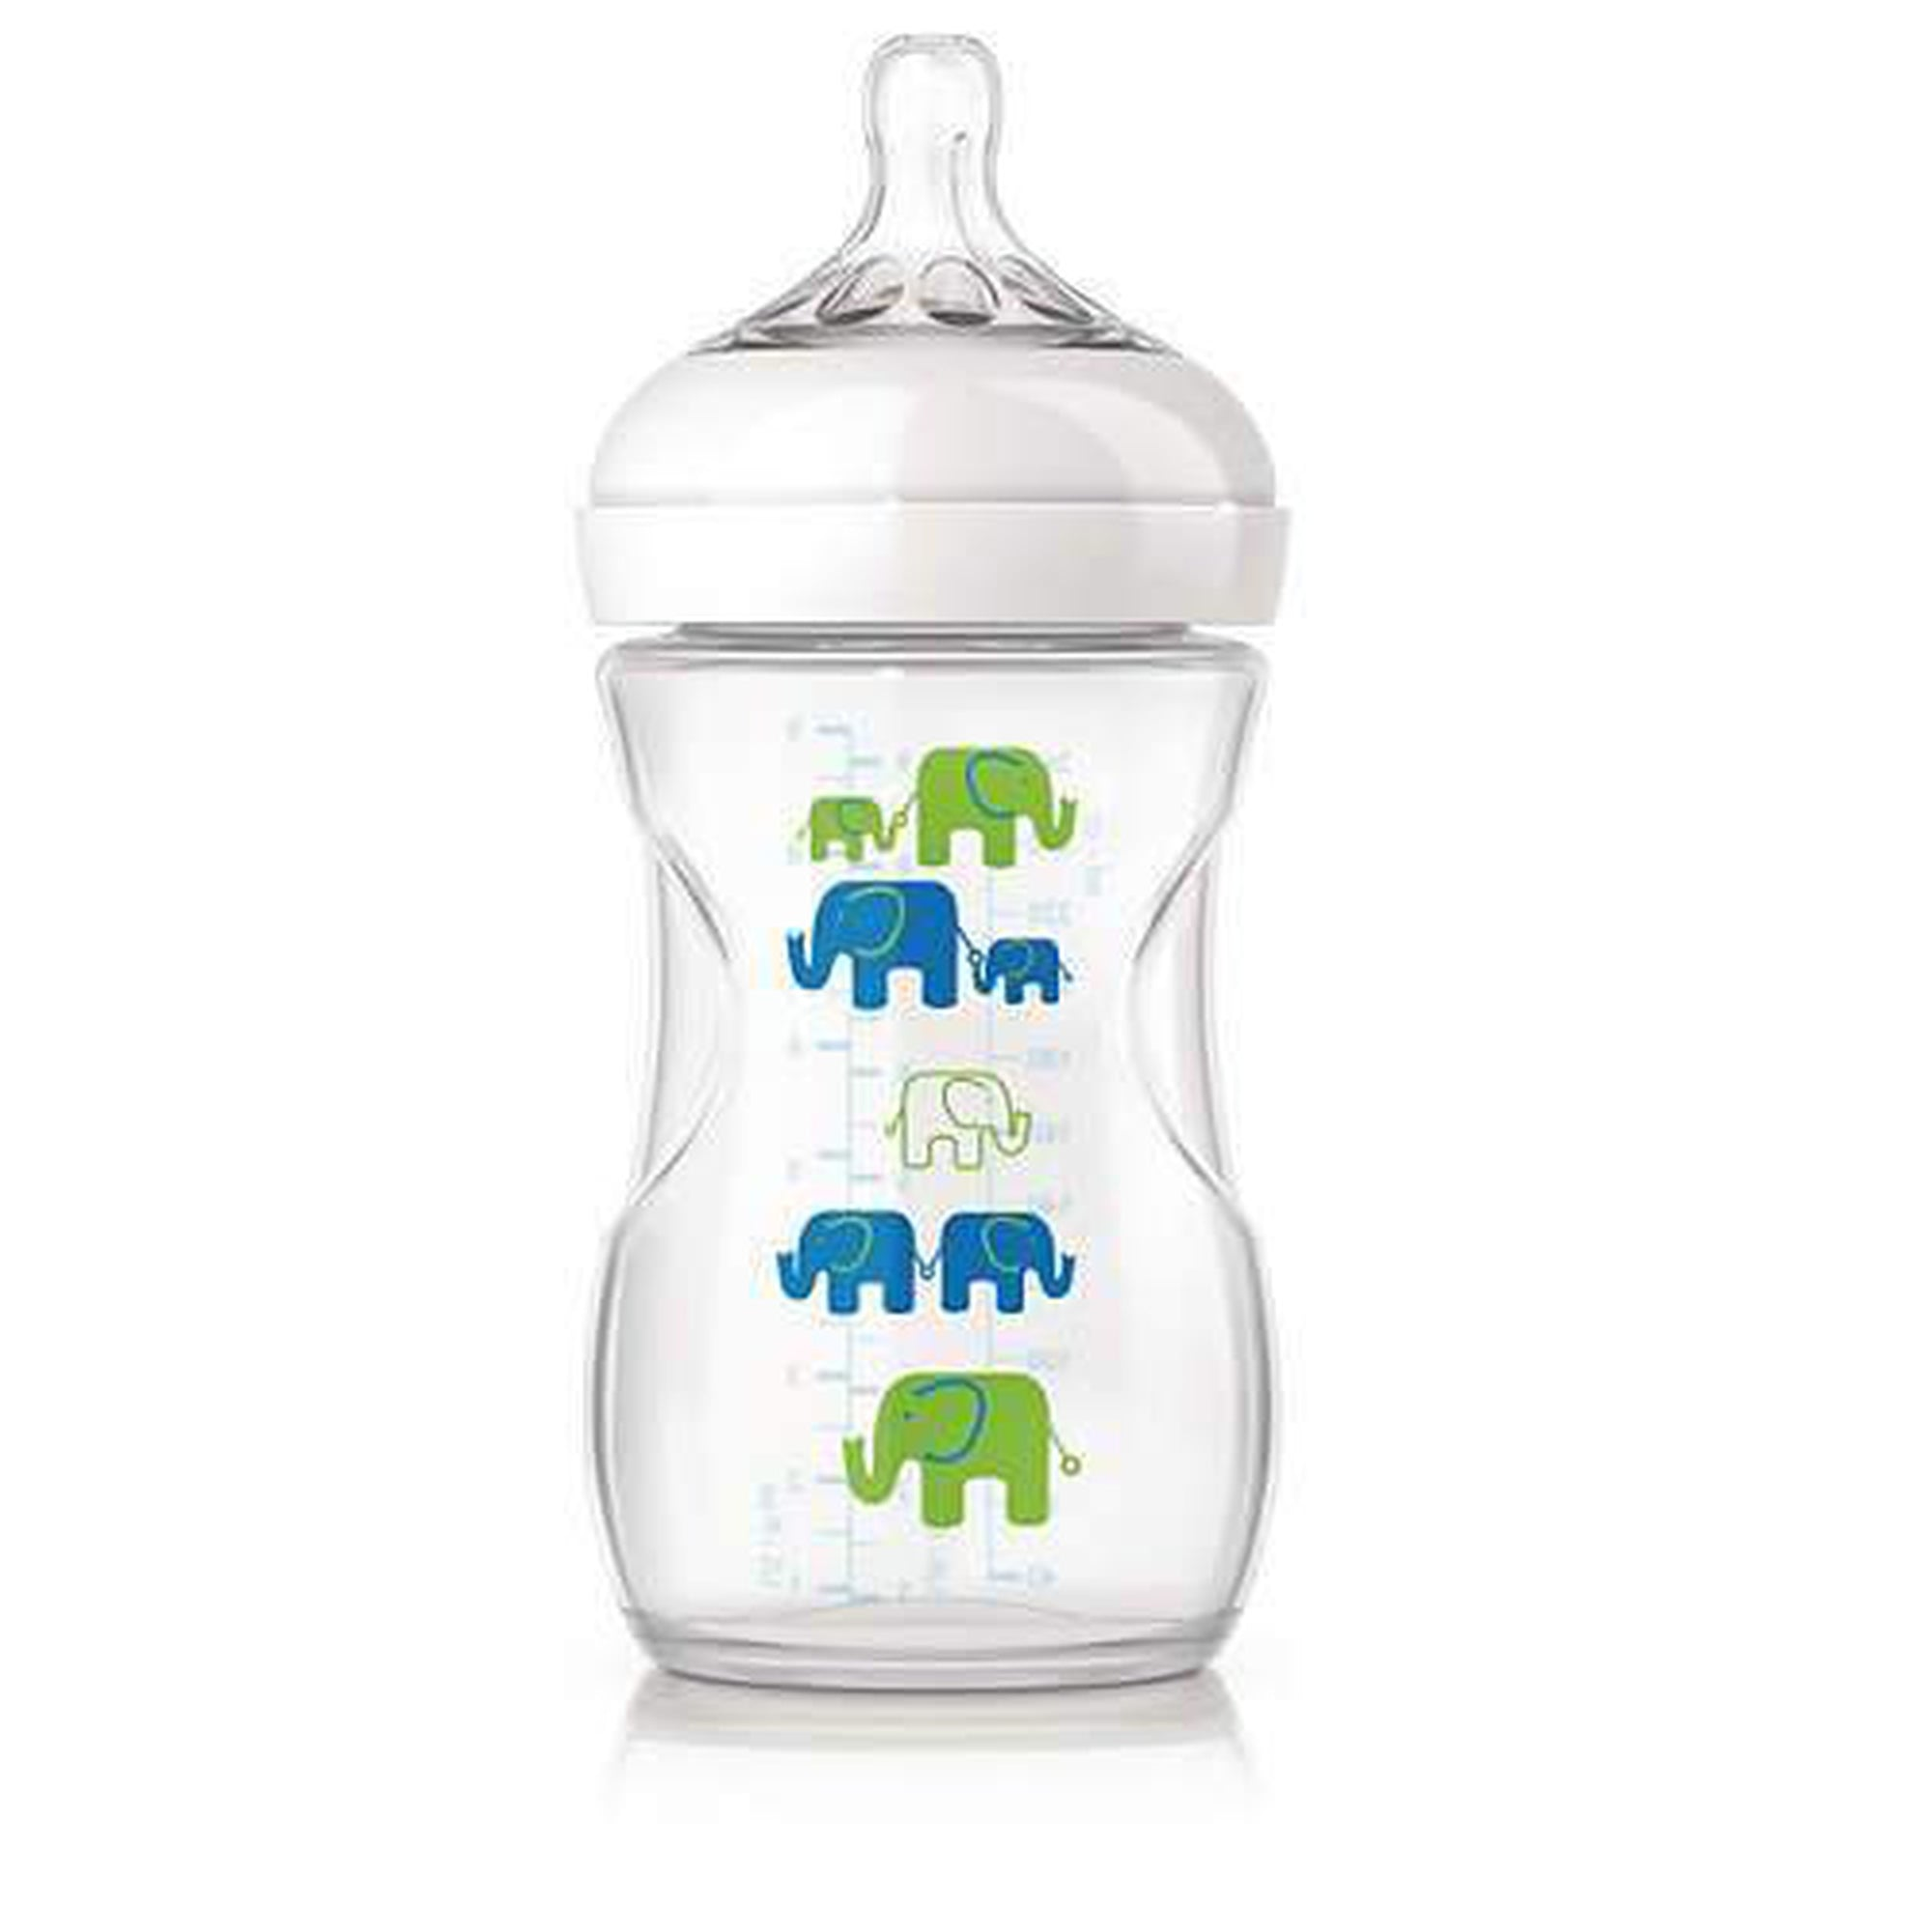 Avent Natural Feeding Bottle Printed 260ml-Bottles-Mother and Baby Shop Kenya's #1 Online Baby Shop